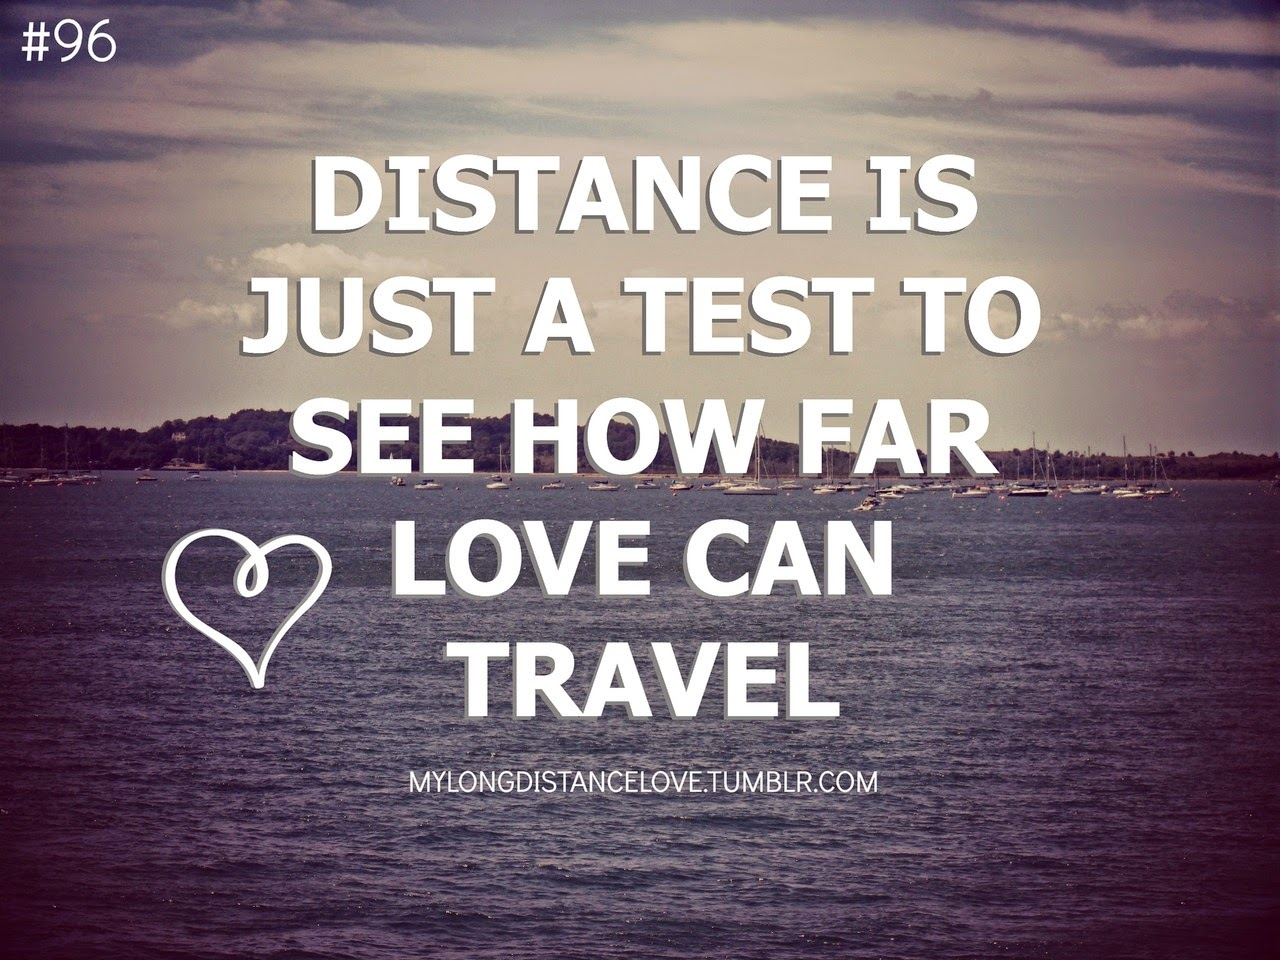 Inspirational Love Quotes For Long Distance Relationships Distance Relationship Quotes For Her And For Him